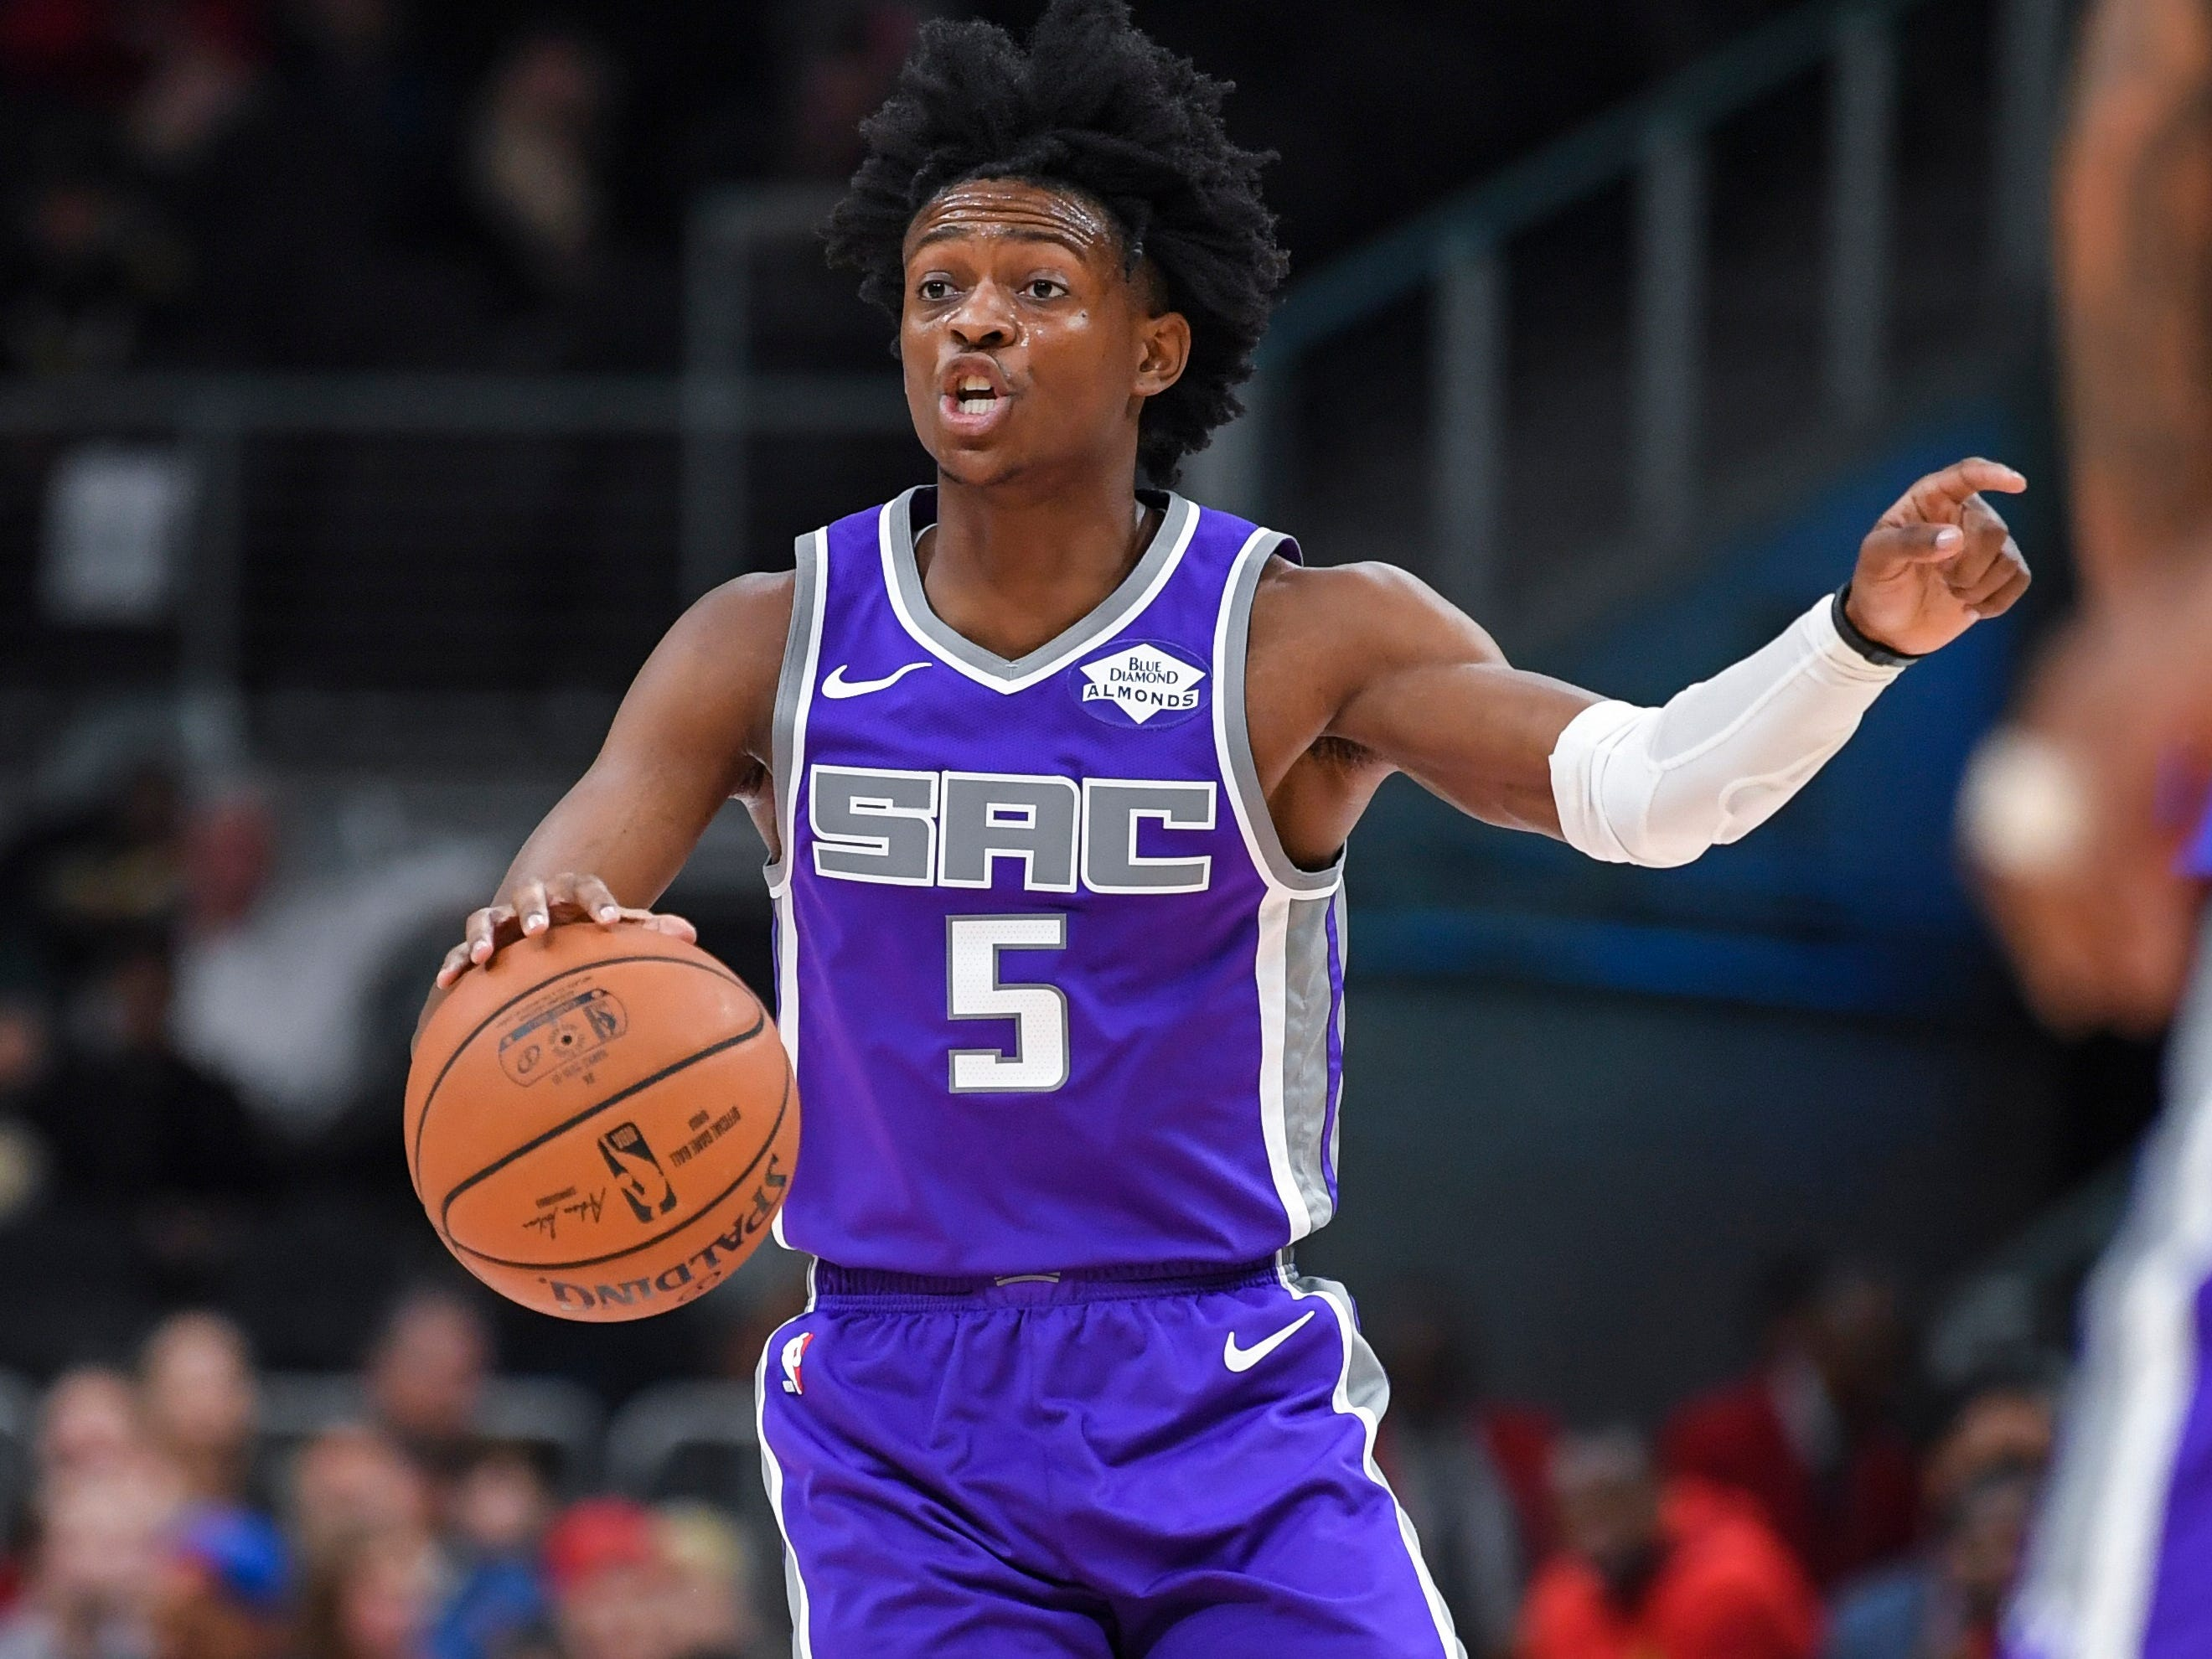 8. De'Aaron Fox, Kings (Nov. 1): 31 points, 15 assists, 10 rebounds in 146-115 win over Hawks.